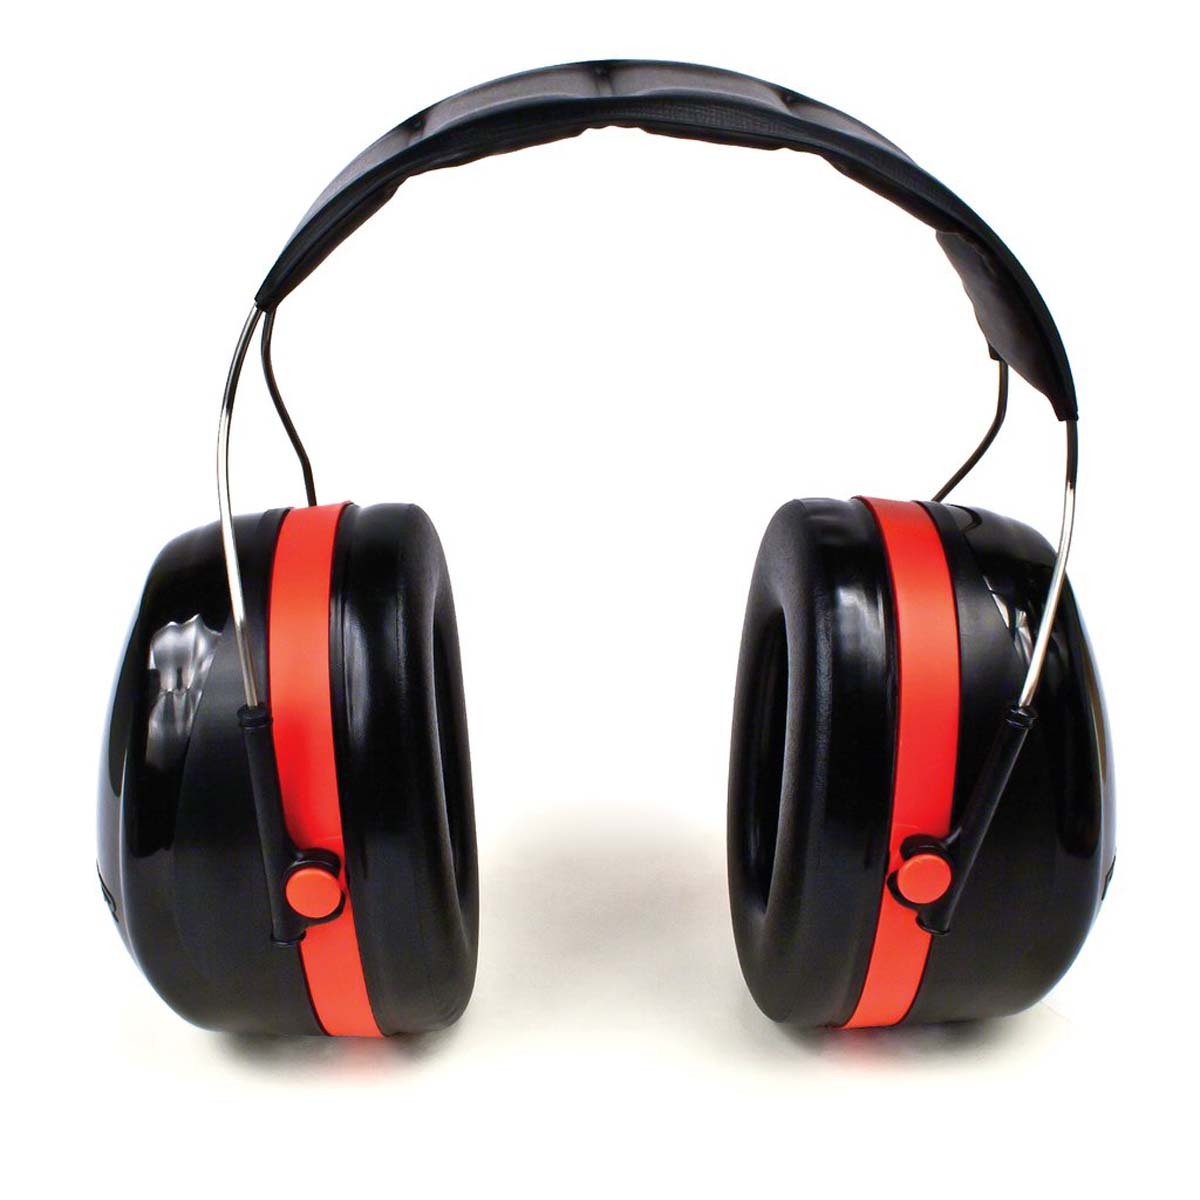 "3Mâ""¢ PELTORâ""¢ Optimeâ""¢ 105 Over-the-Head Earmuffs H10A"